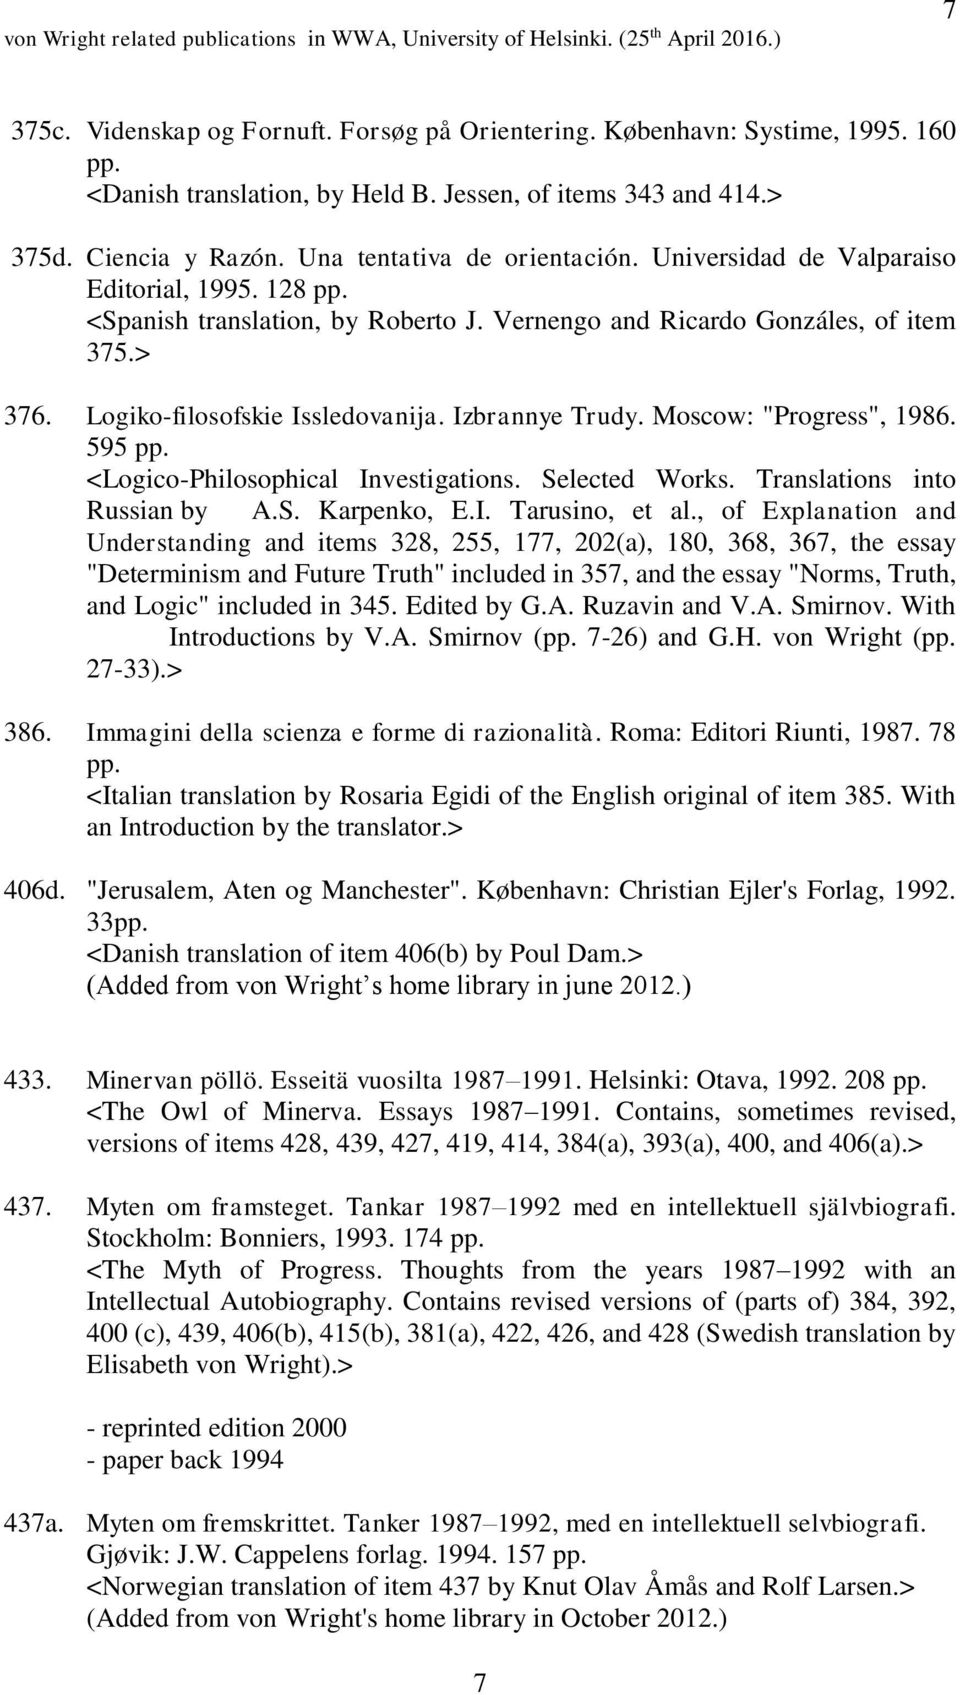 Publications by and related to Georg Henrik von Wright kept in WWA - PDF